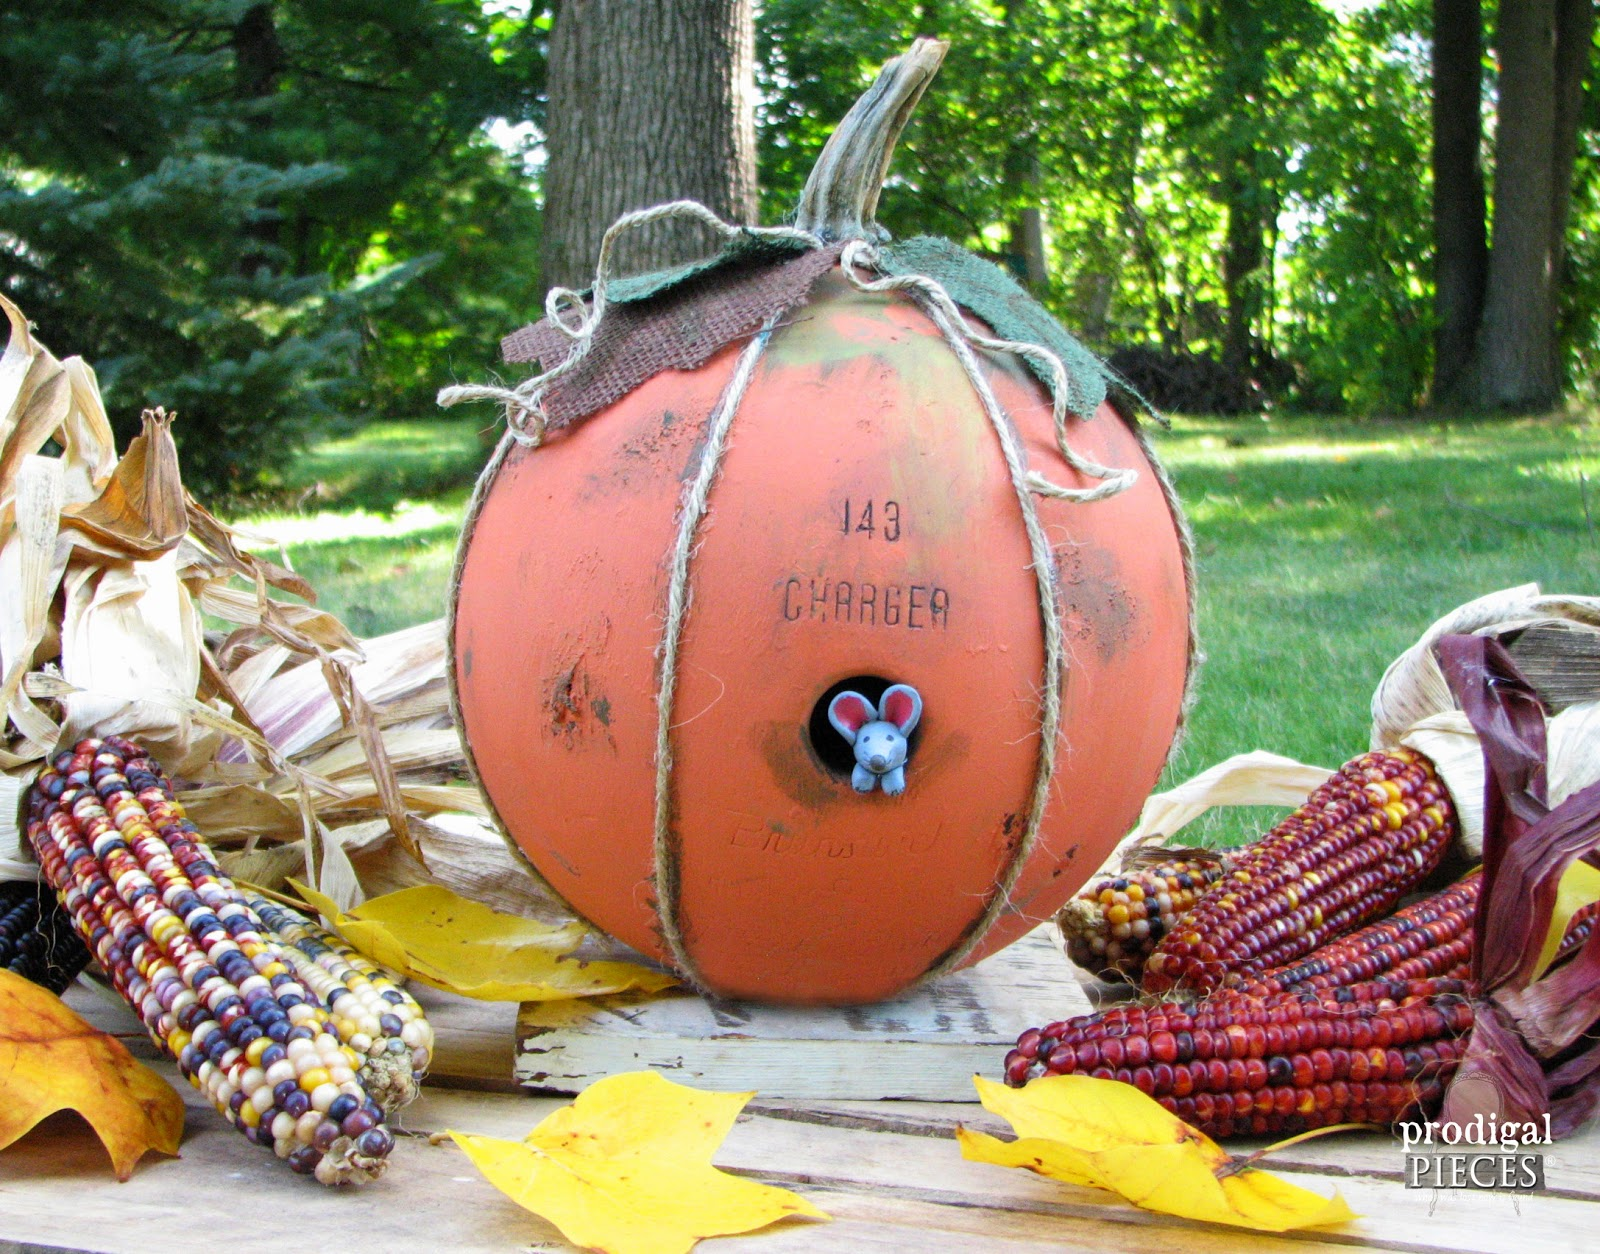 Repurpose an Old Bowling Ball into a Mouse House Pumpkin for Fall by Prodigal Pieces | www.prodigalpieces.com